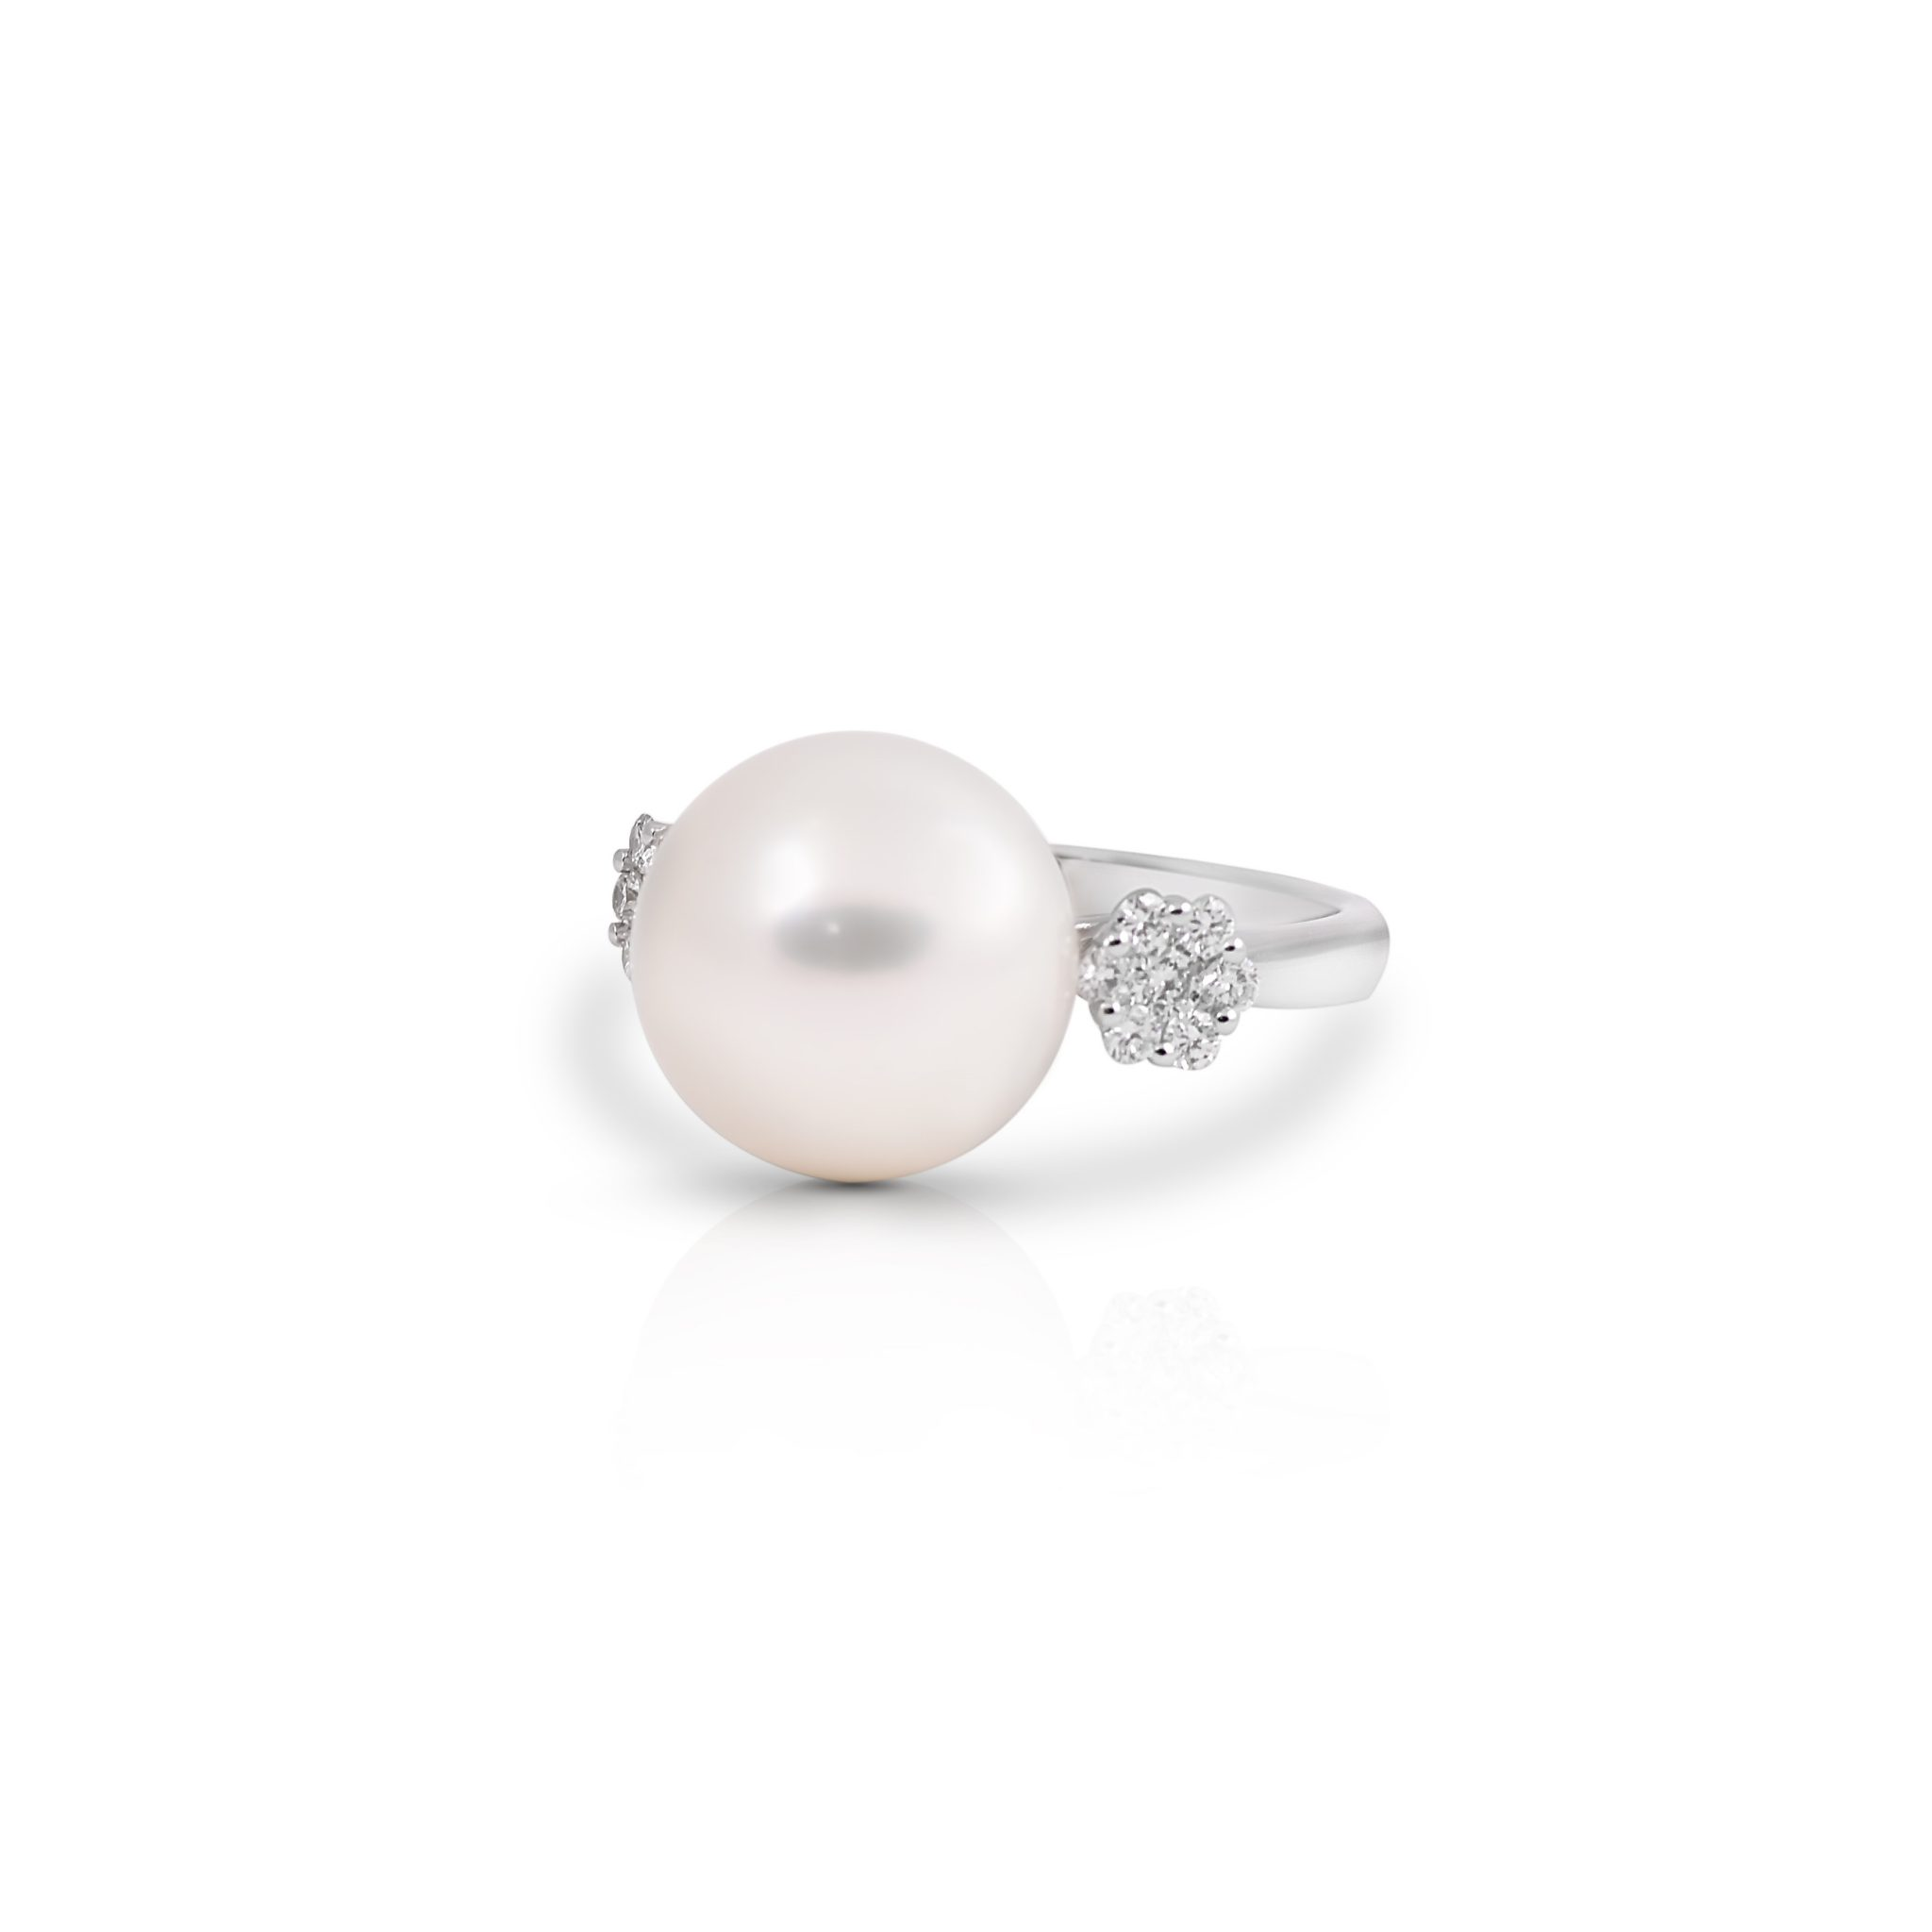 south gold name s navarra sea ring white collection golden archives yellow pearls pearl